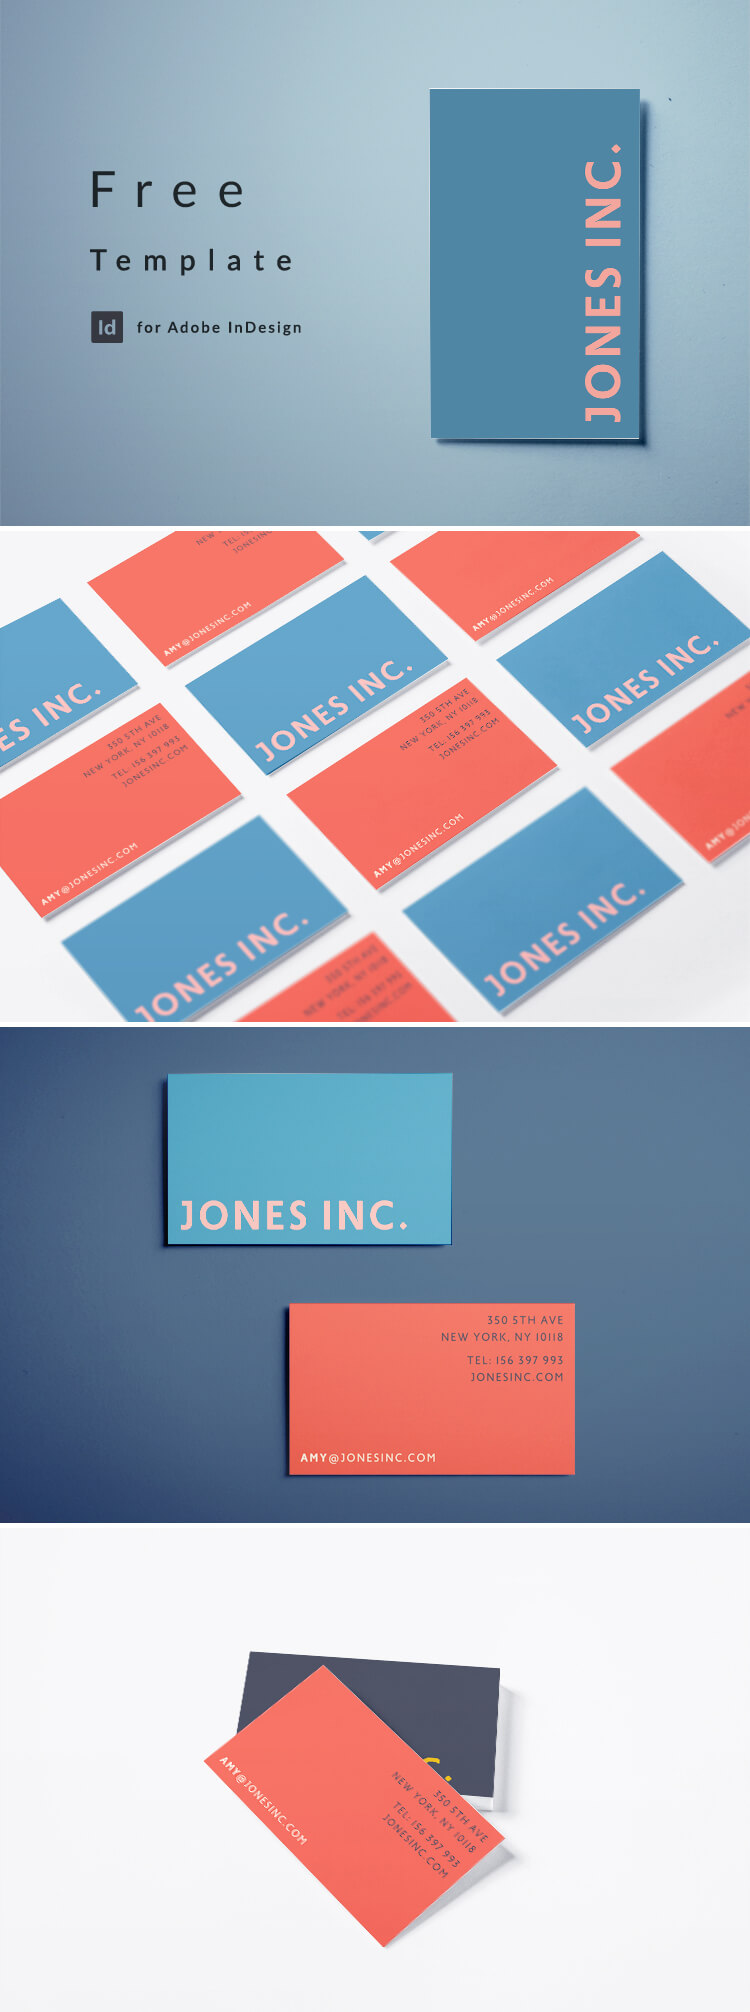 Free Business Card Template - Modern Minimal Business Card Design for InDesign